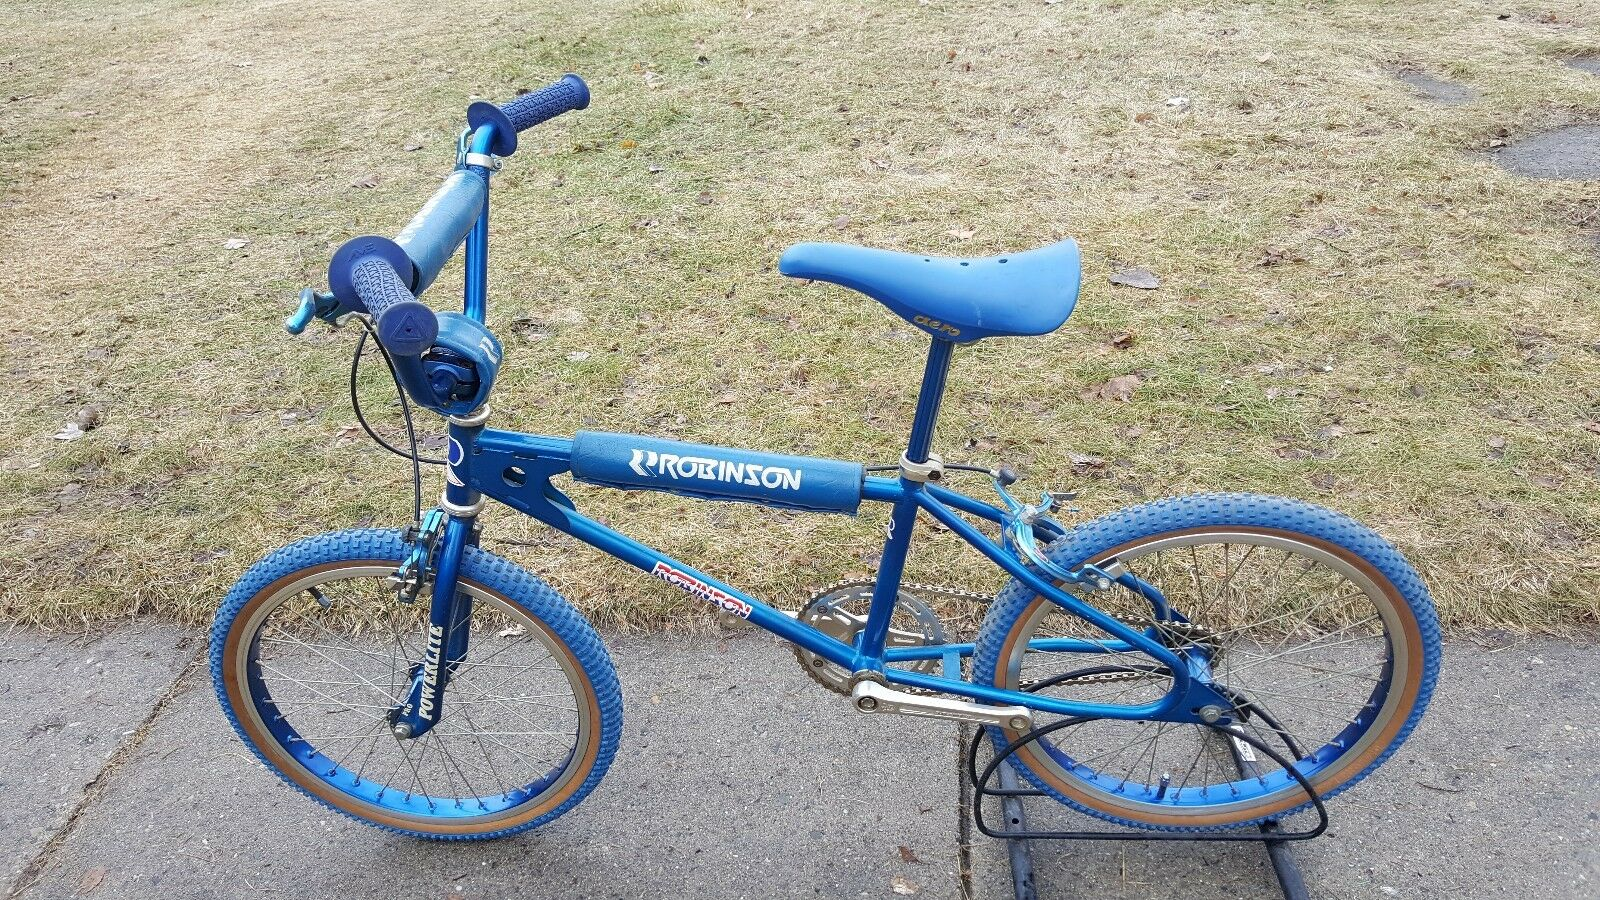 OLD SCHOOL BMX 1979 ROBINSON FRAME POWERLITE FORK BULLSEYE RACE  INC VINTAGE RARE  happy shopping